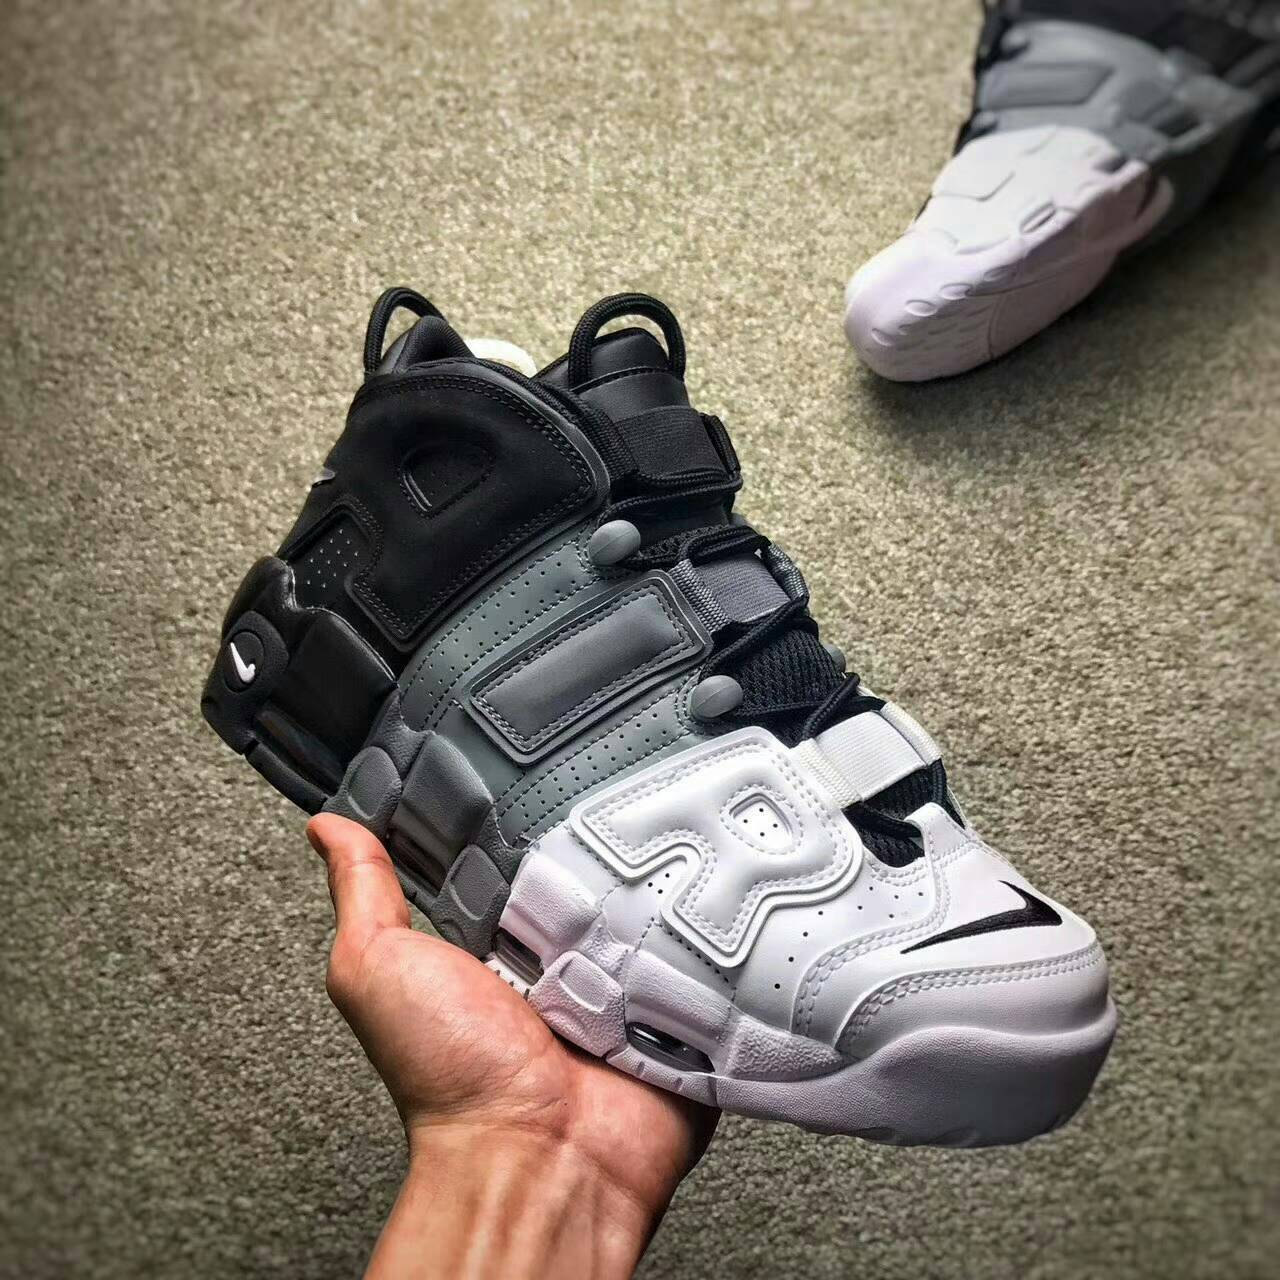 Nike Air More Uptempo Pippen 大AIR黑灰漸變籃球鞋 男款